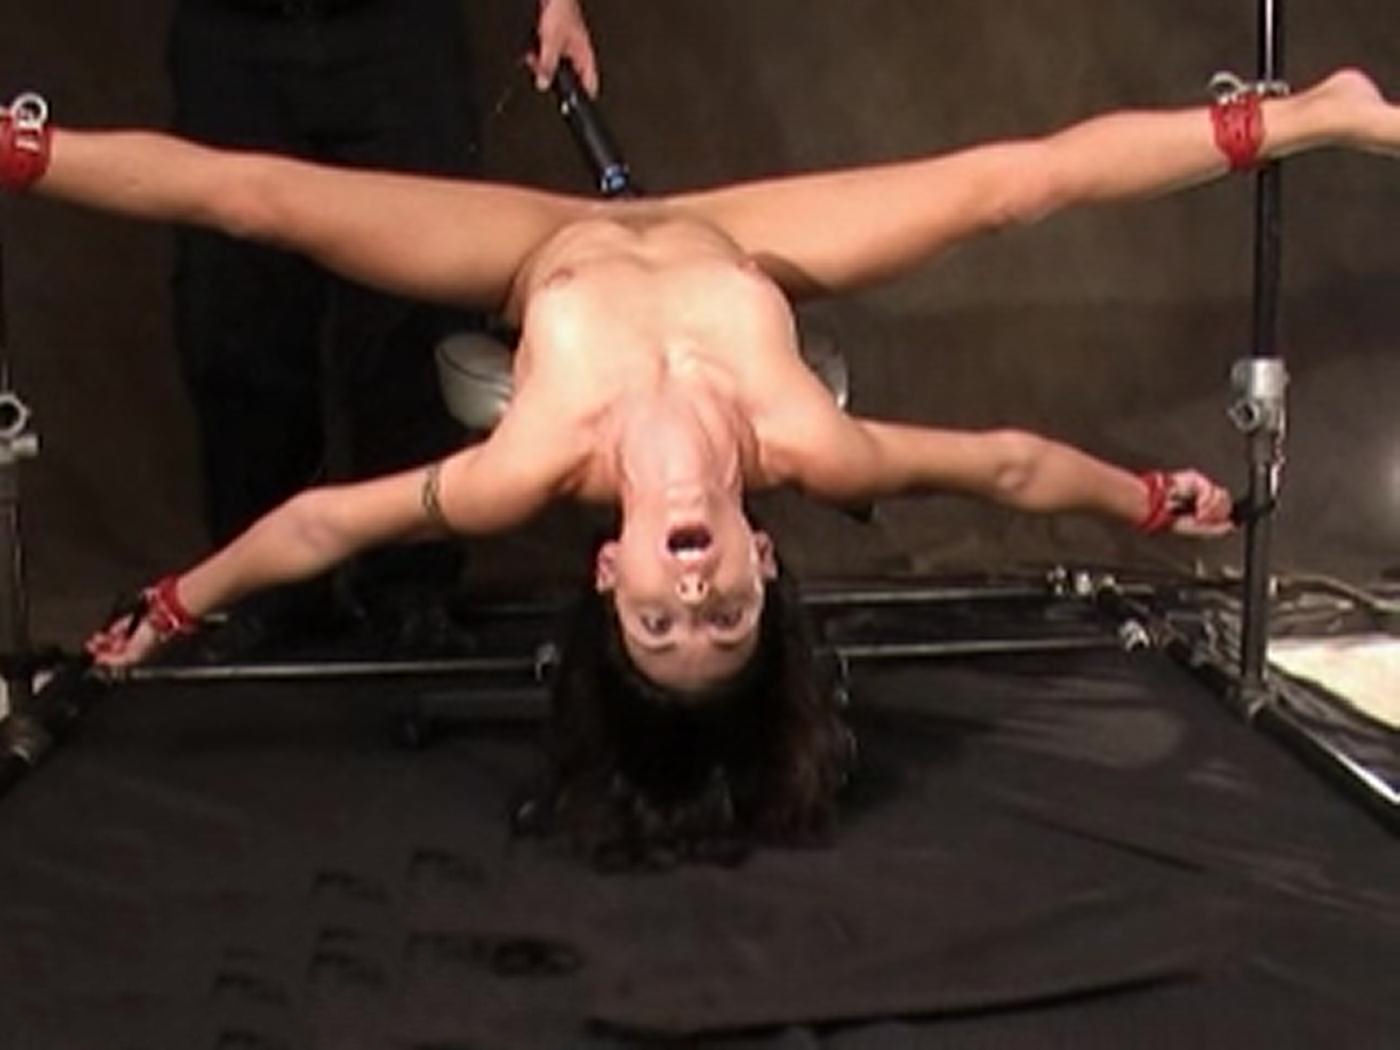 Self bondage multiple orgasms